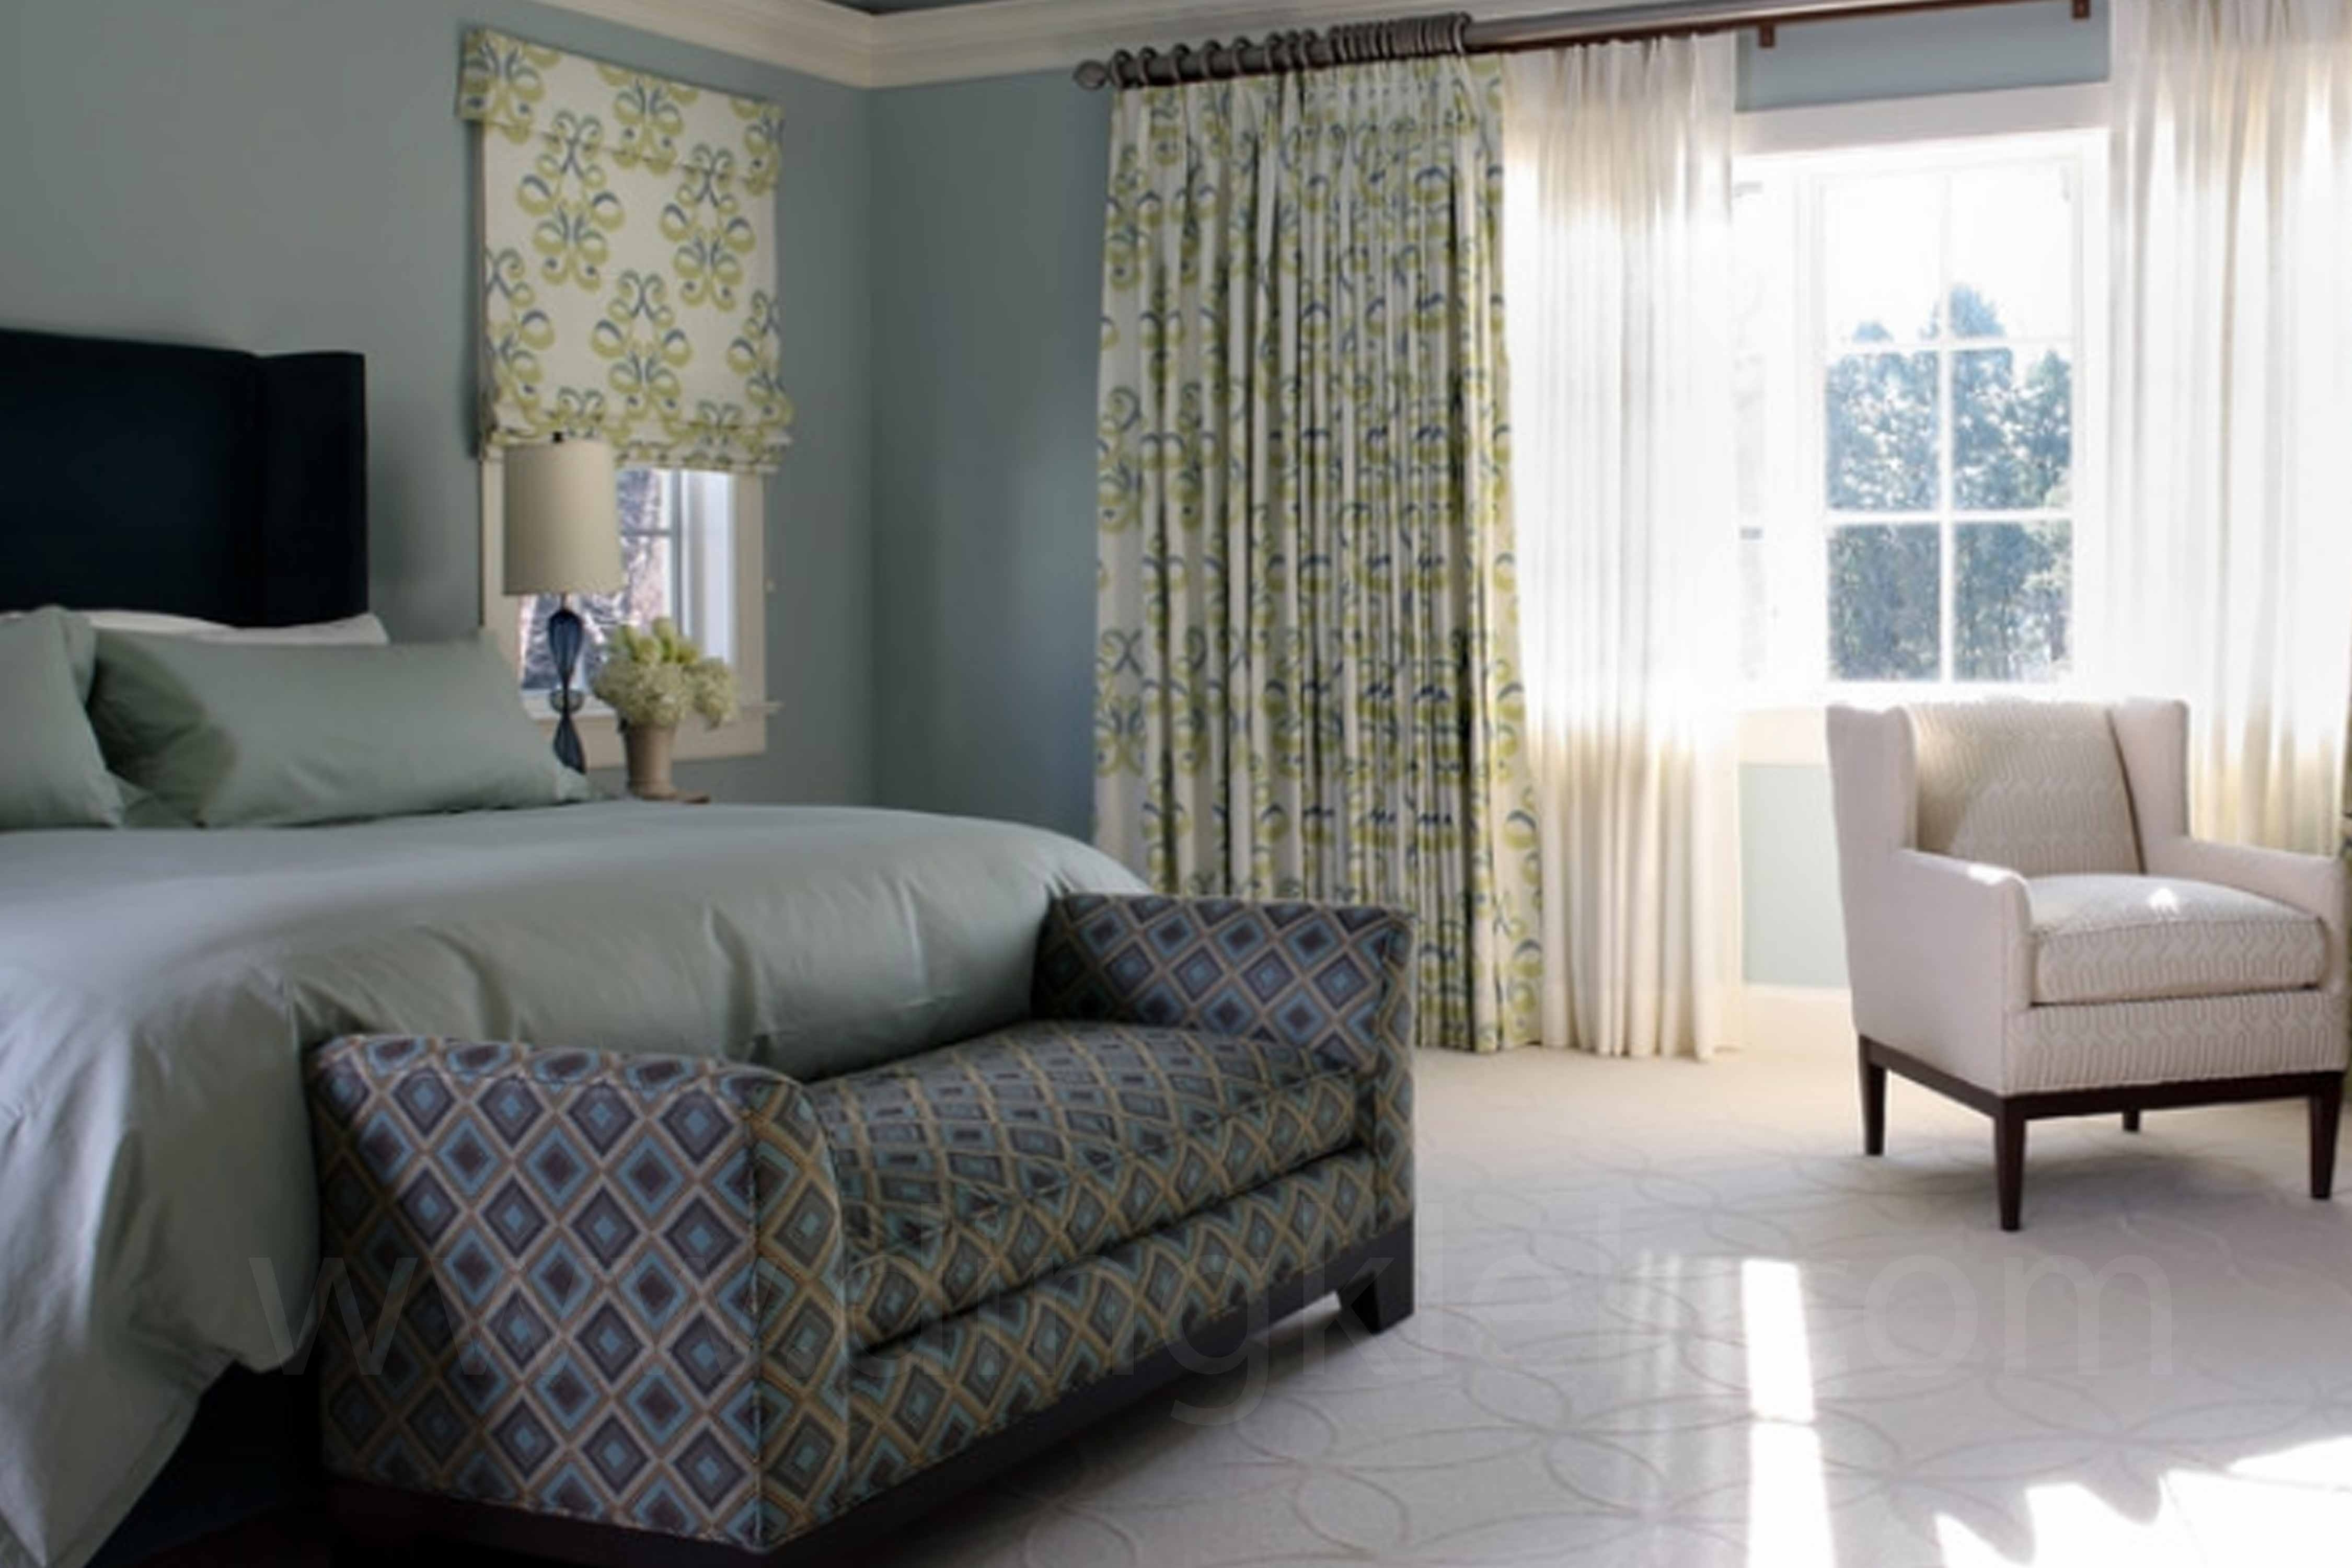 Beautiful Bedroom Sofas 20 About Remodel Office Sofa Ideas With With Regard To Bedroom Sofas (Image 1 of 10)